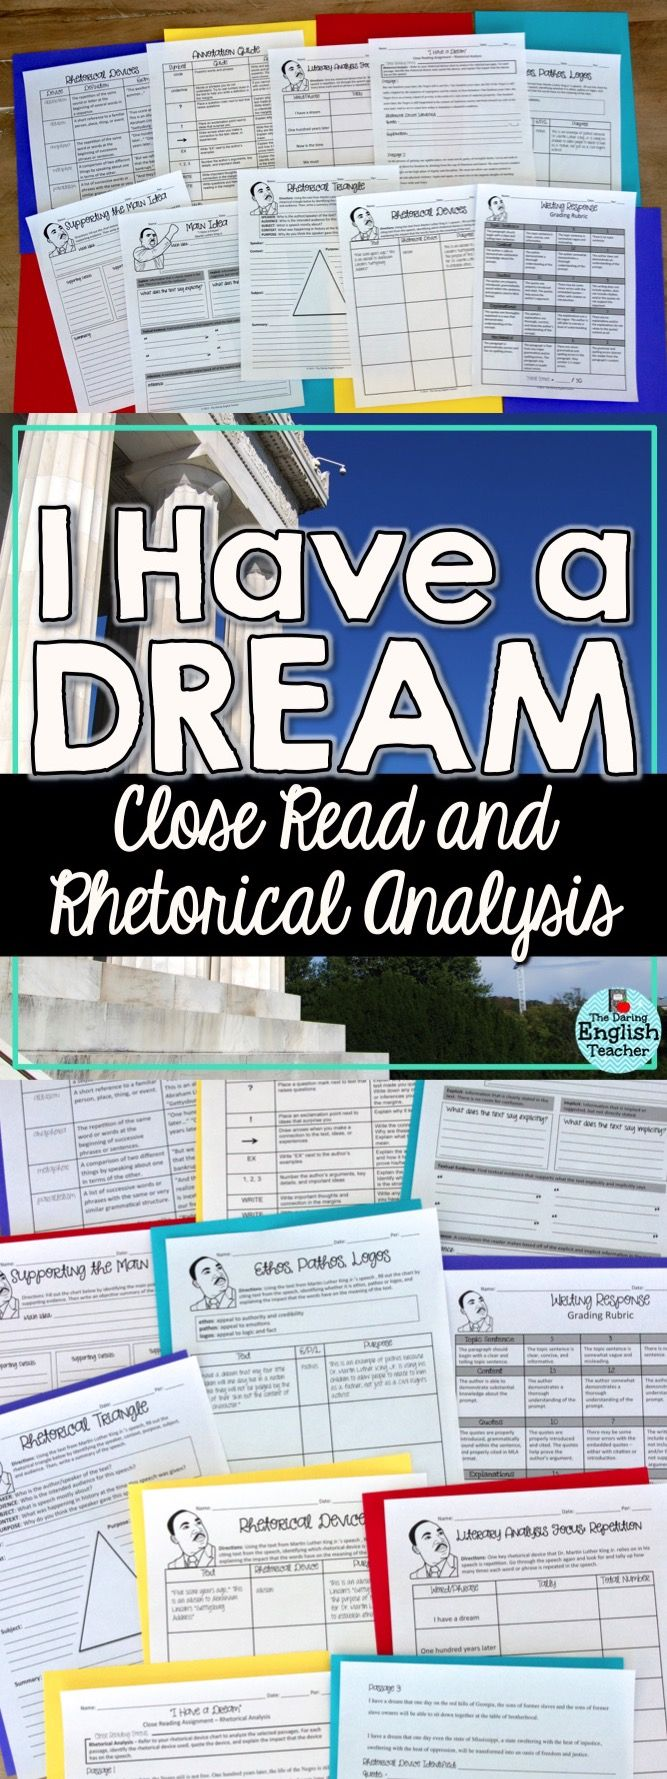 a rhetorical analysis of i have a In his speech he carefully used three different types of rhetorical methods: ethos, pathos, and logos since mr king was an african american he portrayed this message more effectively using ethos we will write a custom essay sample on i have a dream rhetorical analysis specifically for you.